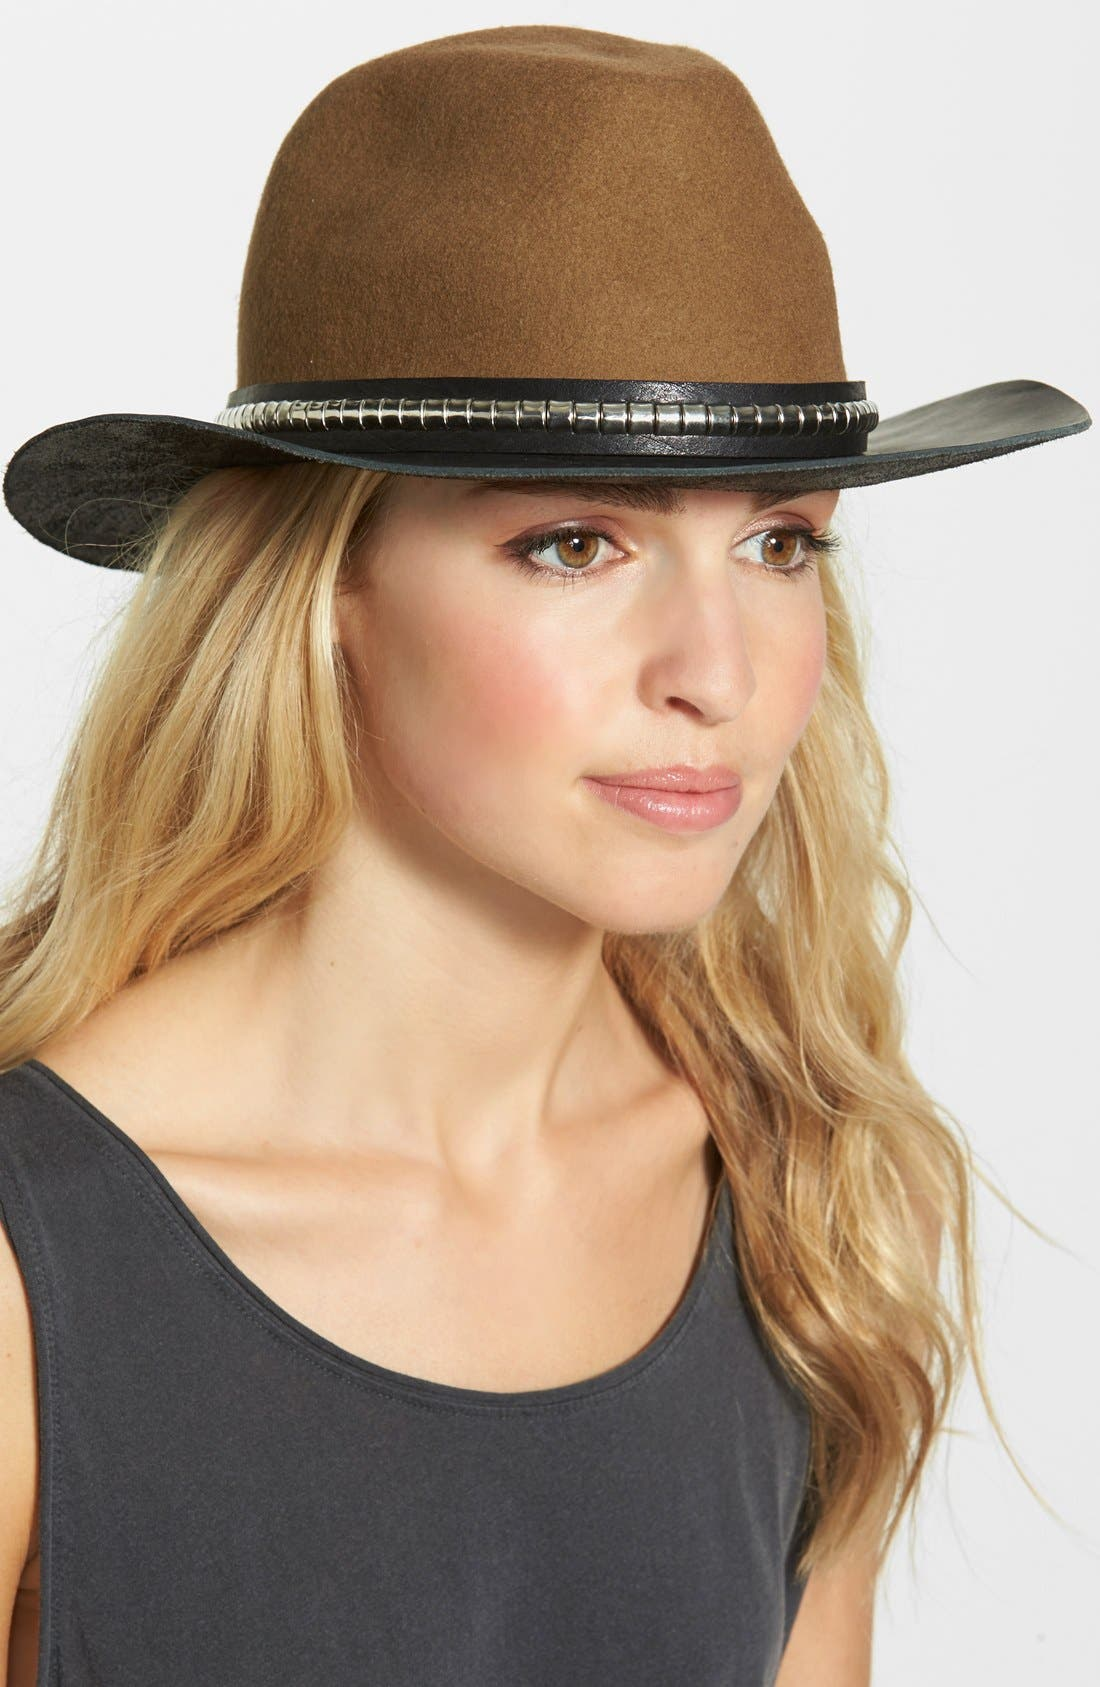 Wool & Leather Western Hat,                             Main thumbnail 1, color,                             250